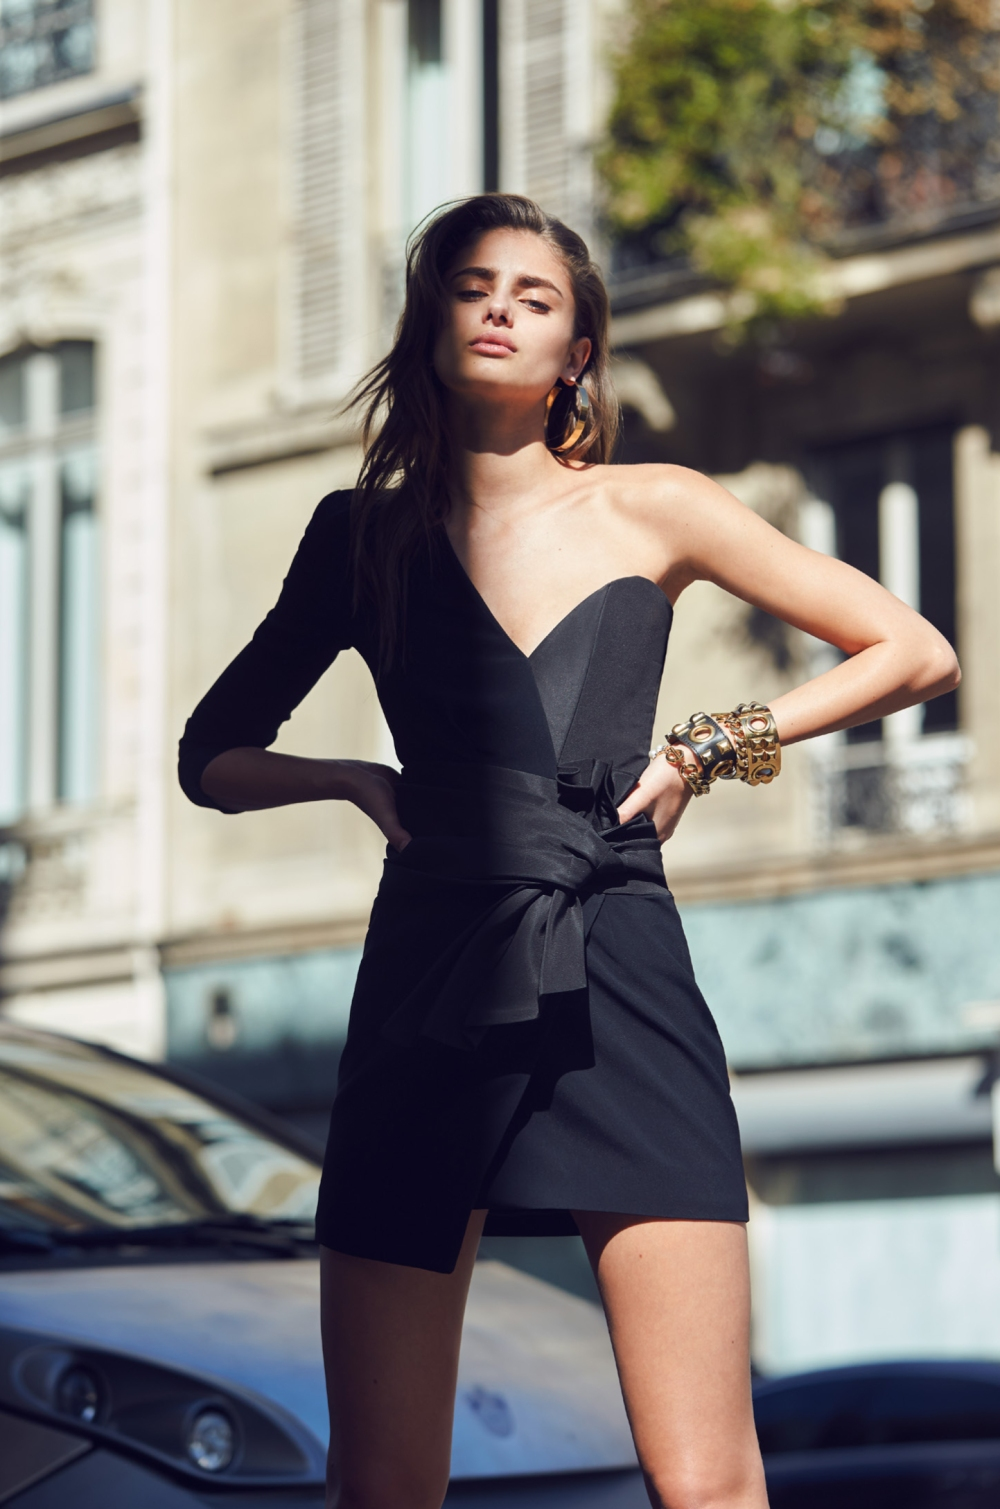 alexandre-vauthier-fall-2016-lookbook-with-taylor-hill-shot-by-david-bellemere-at-thomas-treuhaft-6